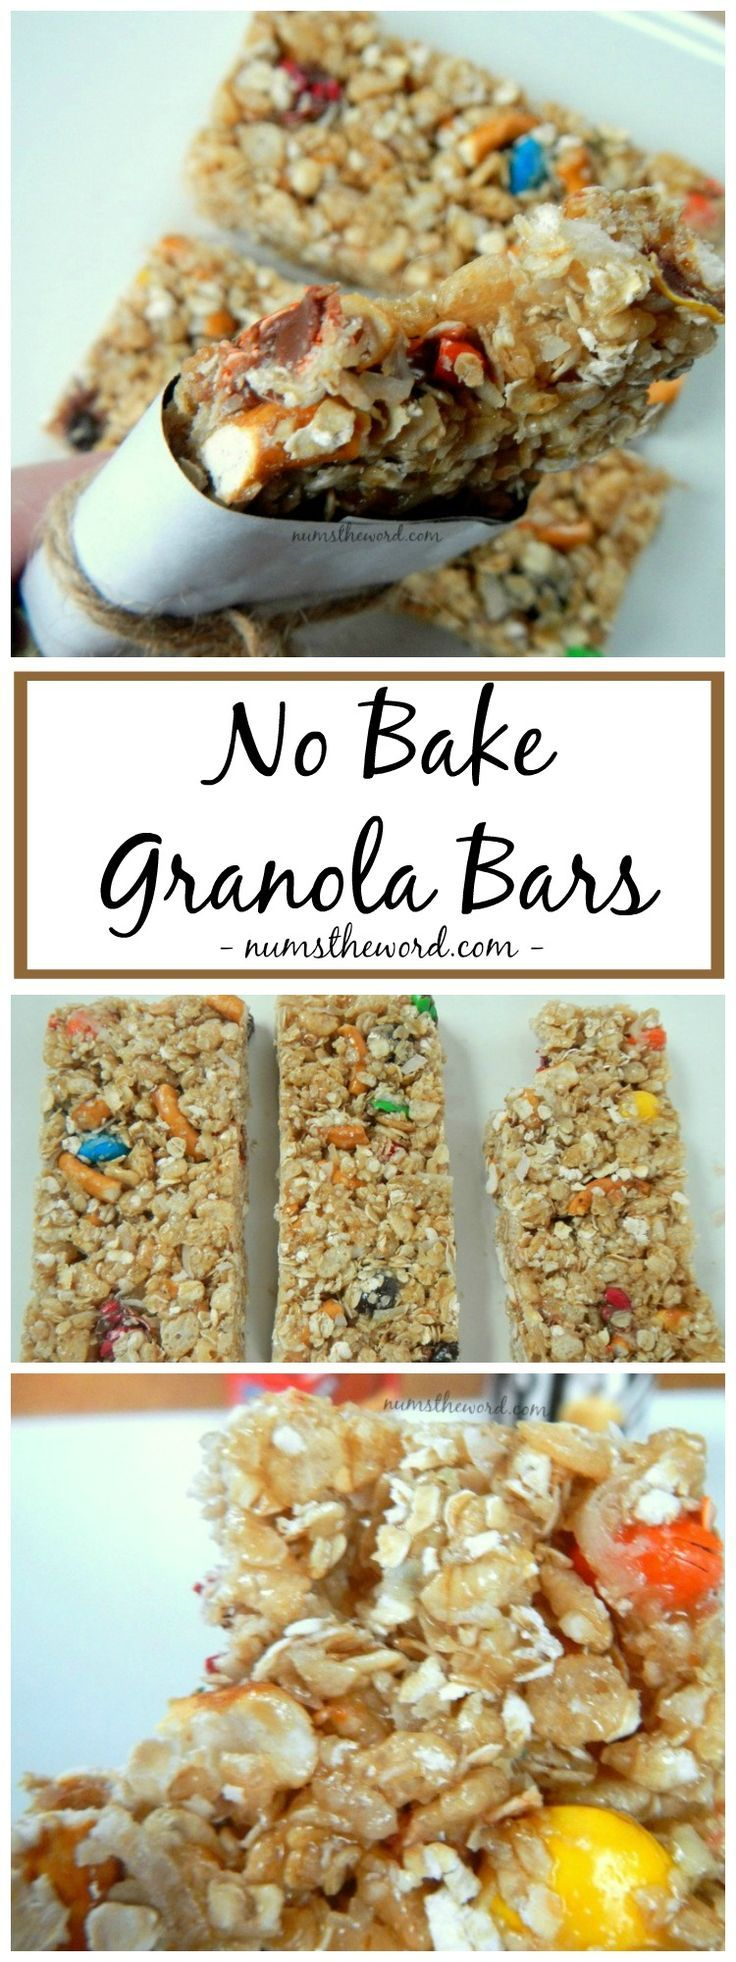 Looking for a healthy and easy after school snack? Check out these easy No Bake Granola Bars that can be customized to your favorite flavors! Kid approved!